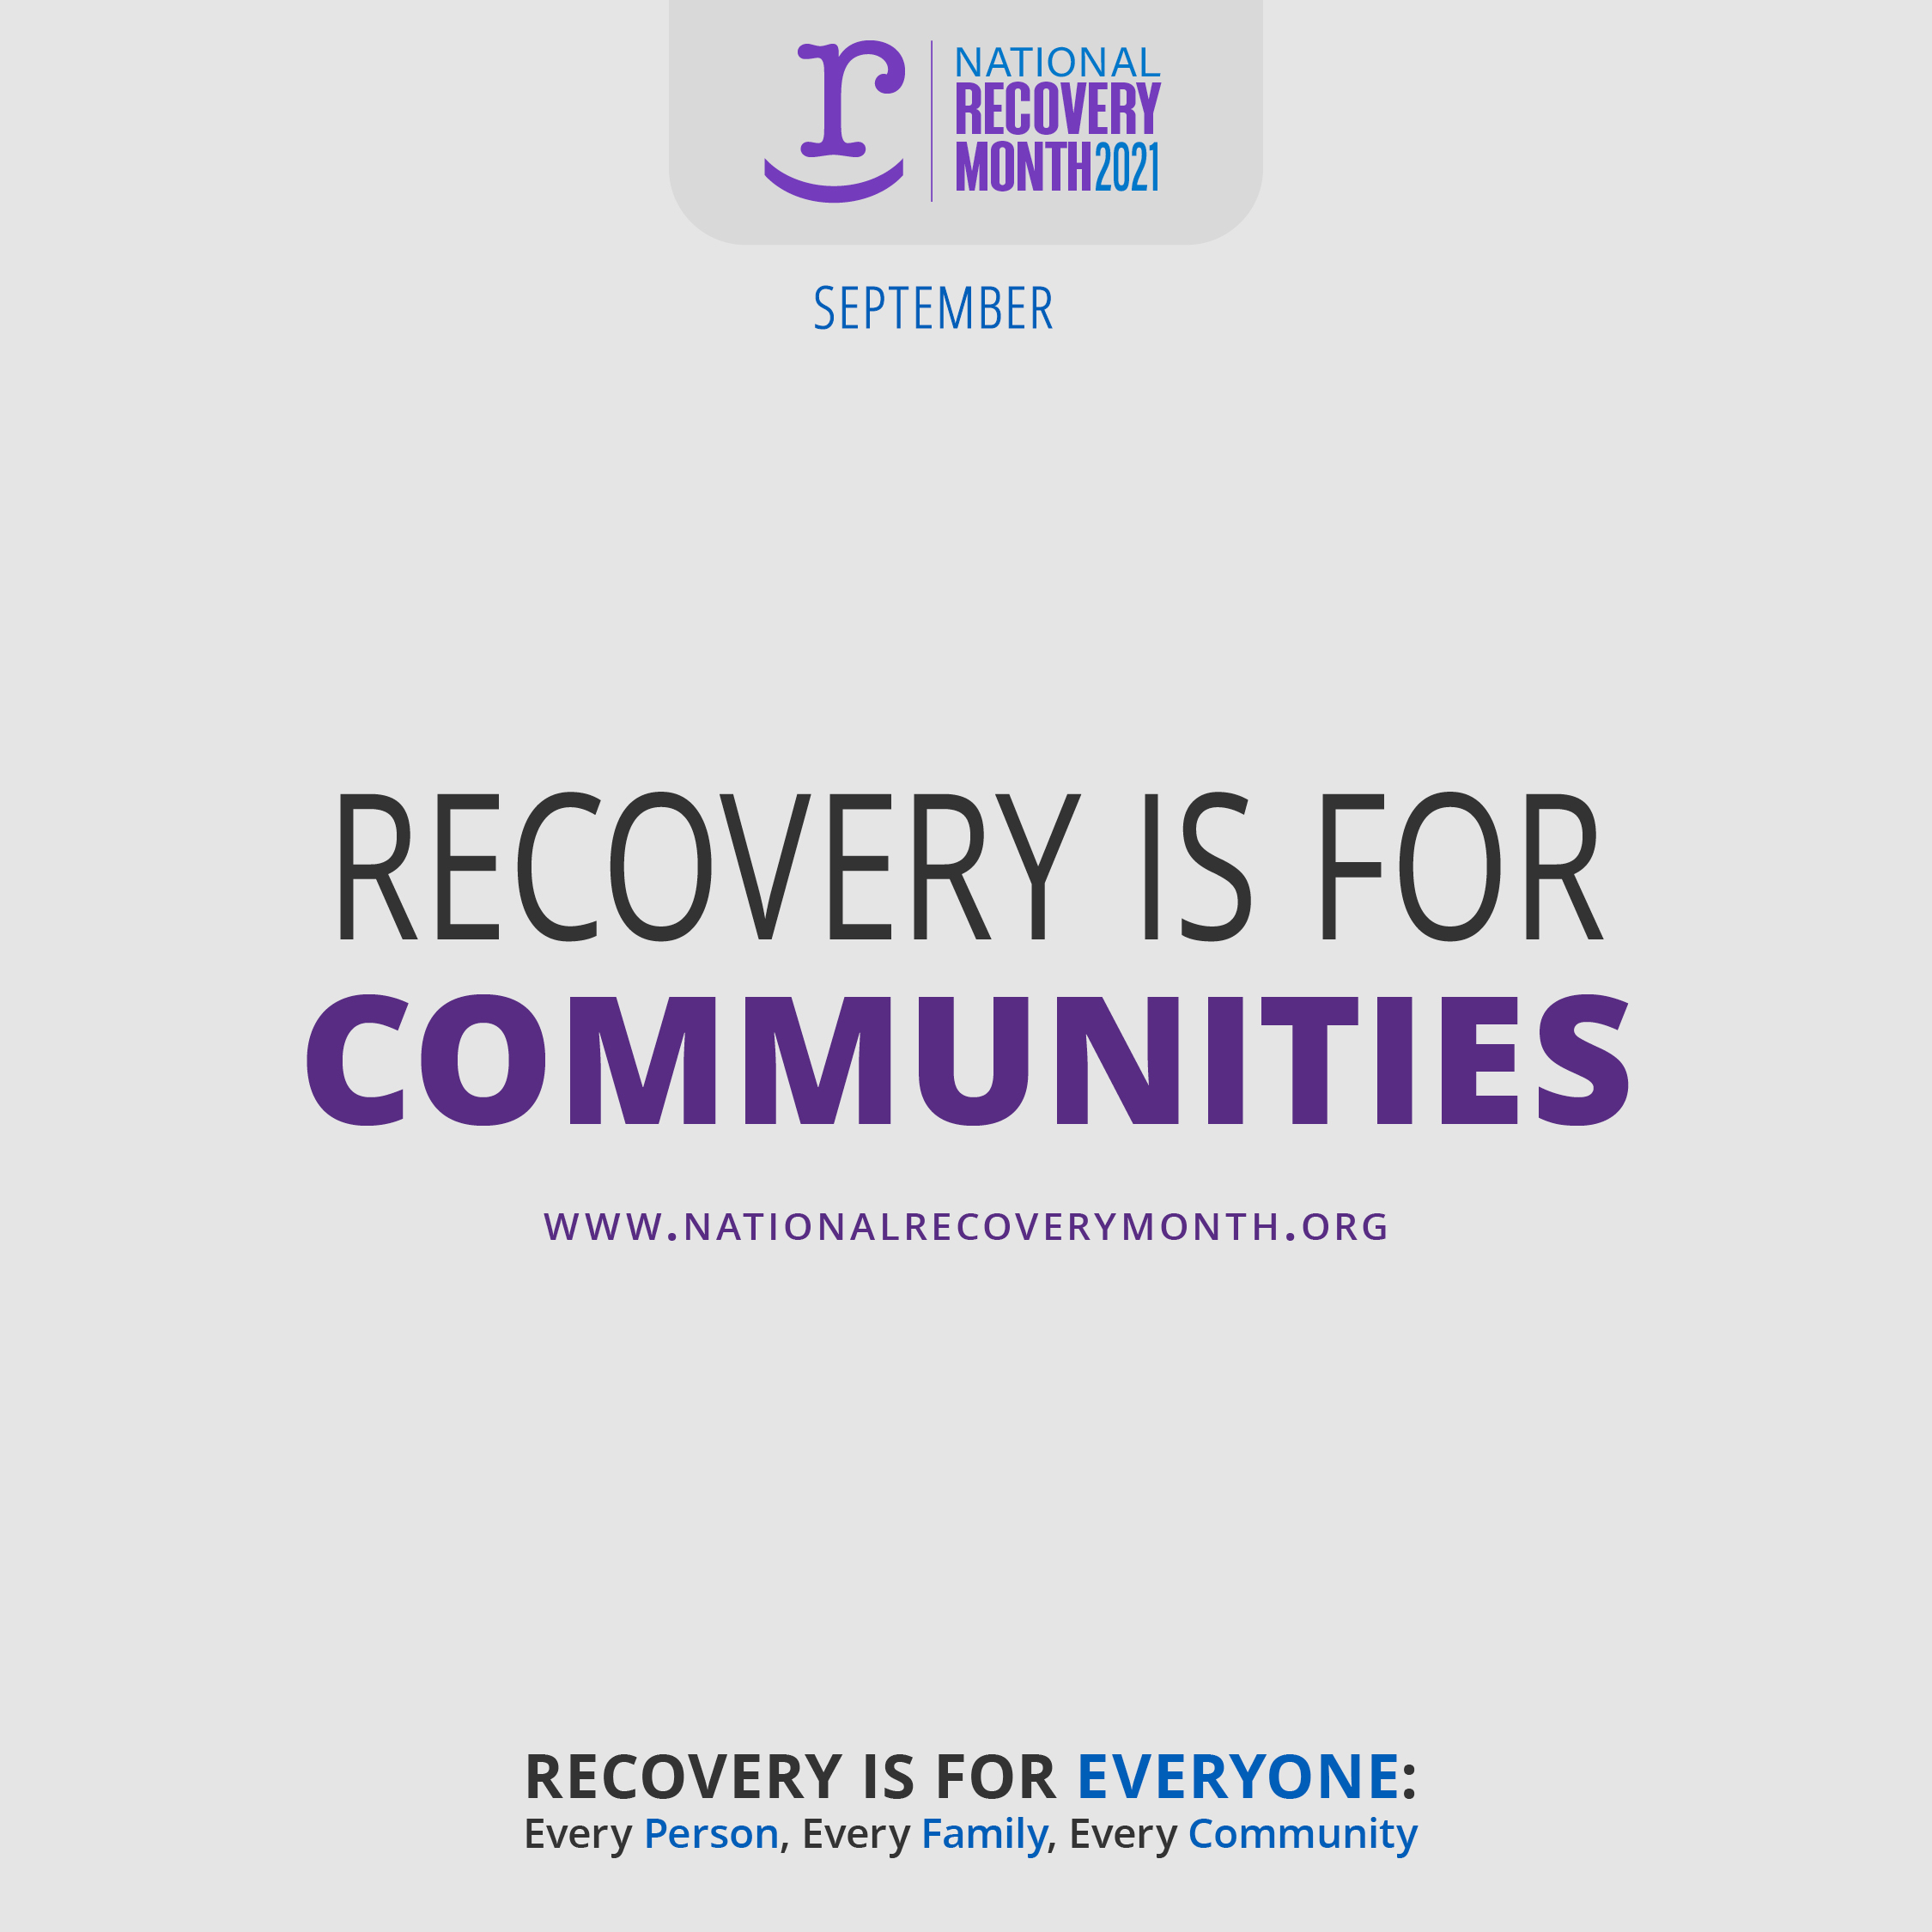 national_recovery-month_social-media-announcement_ig-3c_041421